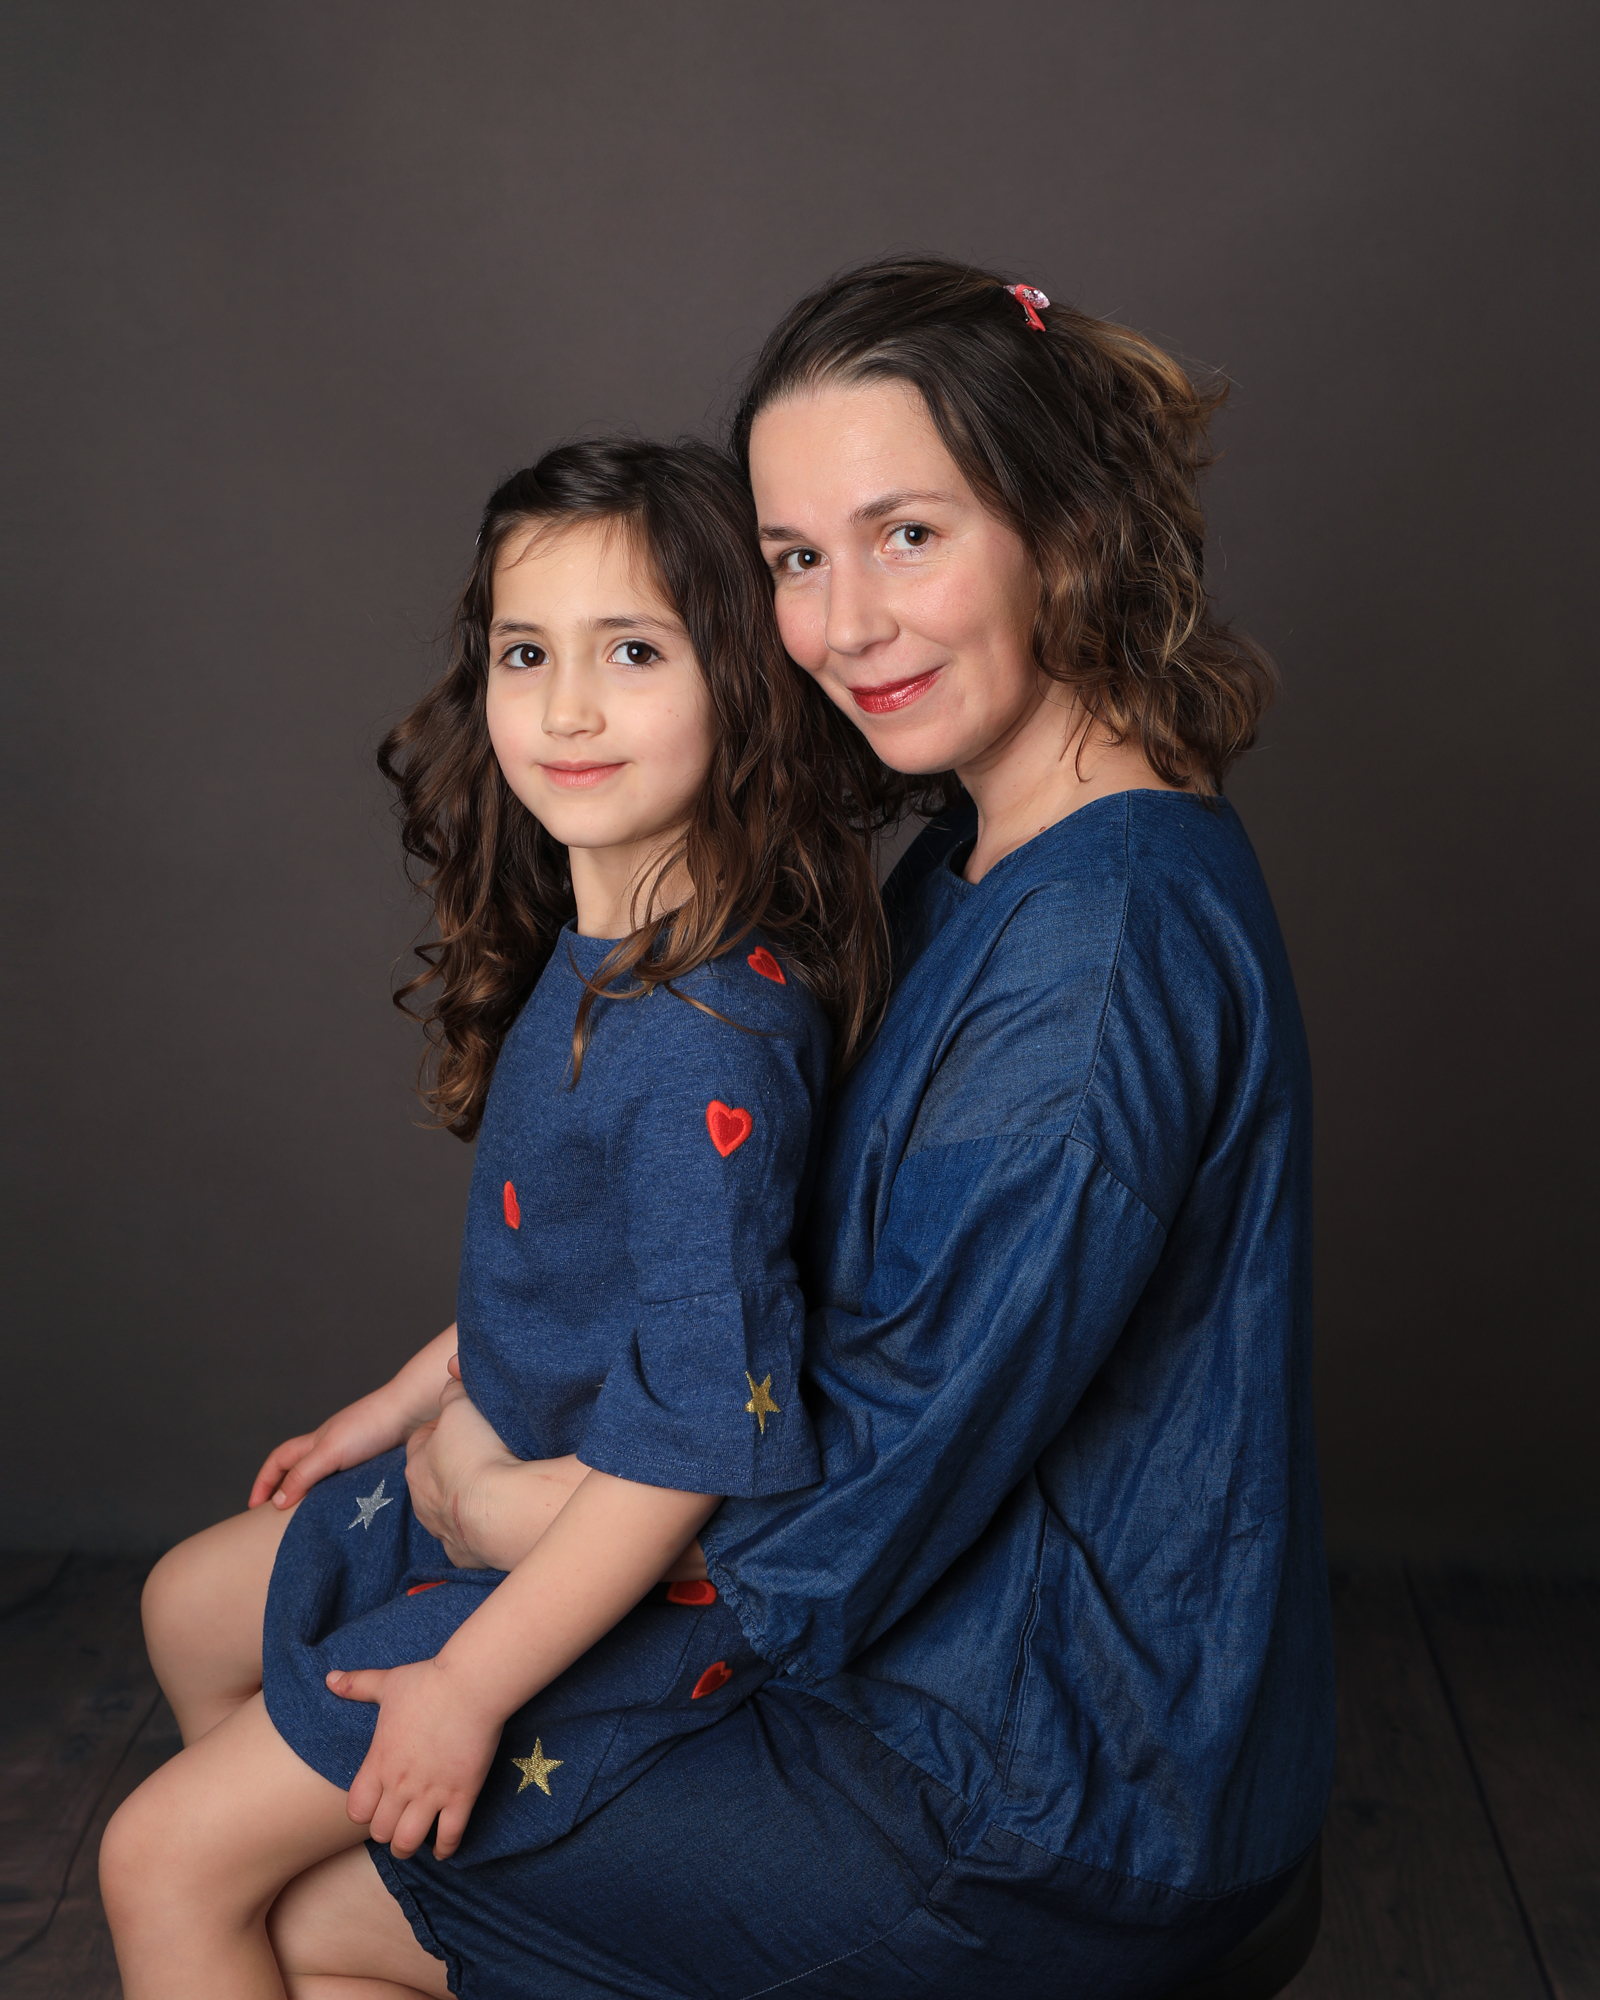 Children & family photographer Dulwich, South London